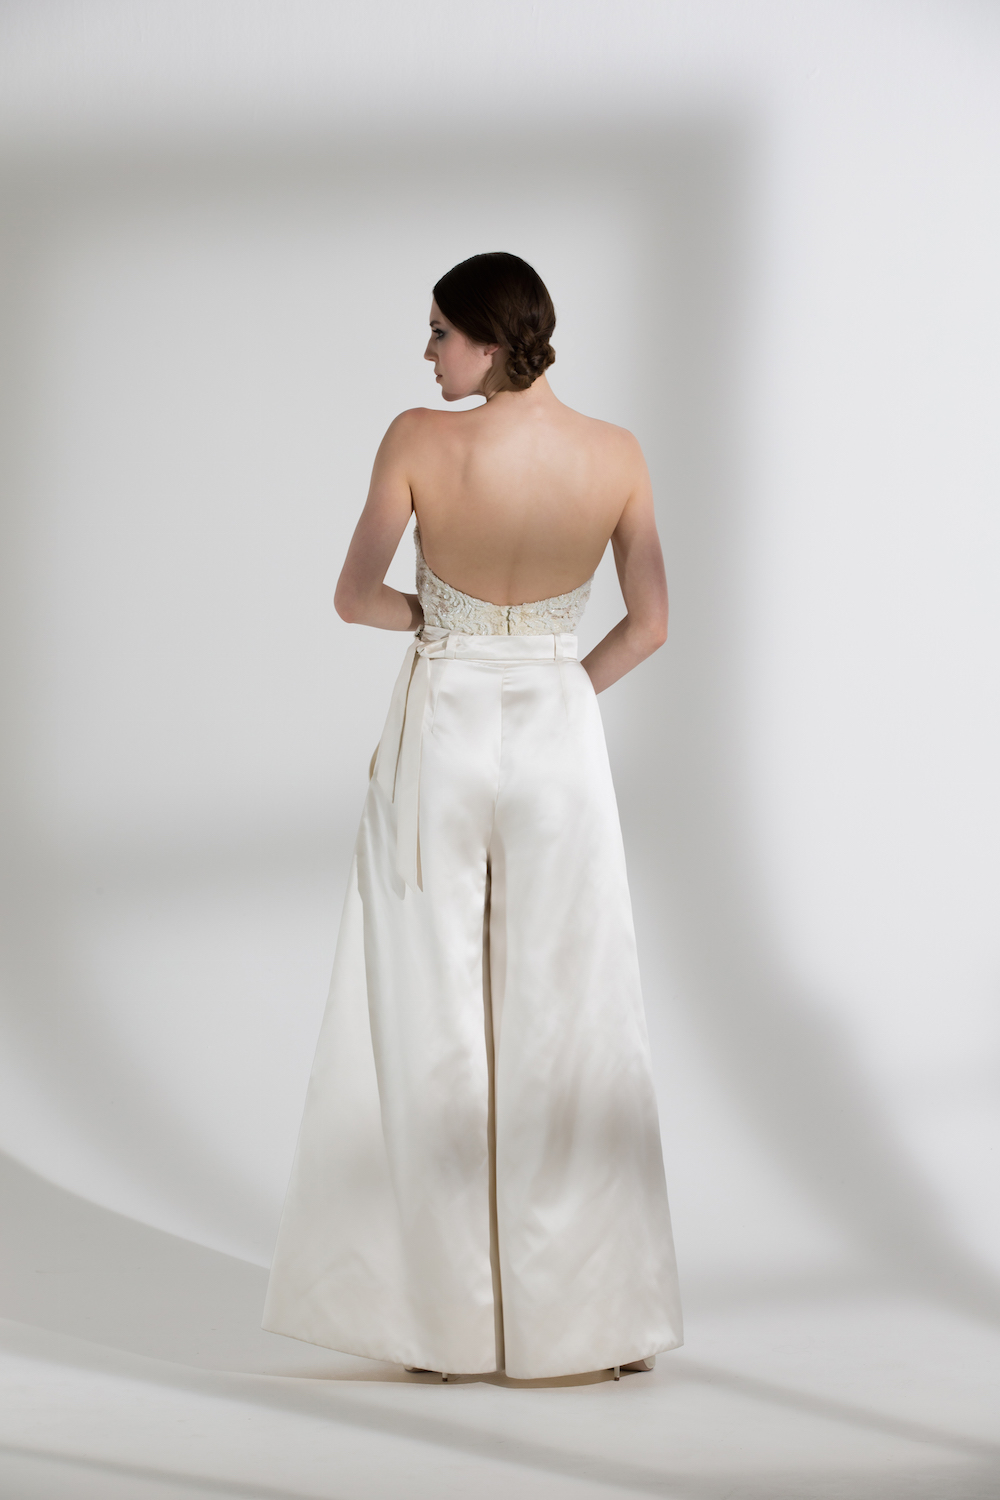 MARLENE TROUSERS & BEADED DITA CORSET | WEDDING DRESS BY HALFPENNY LONDON